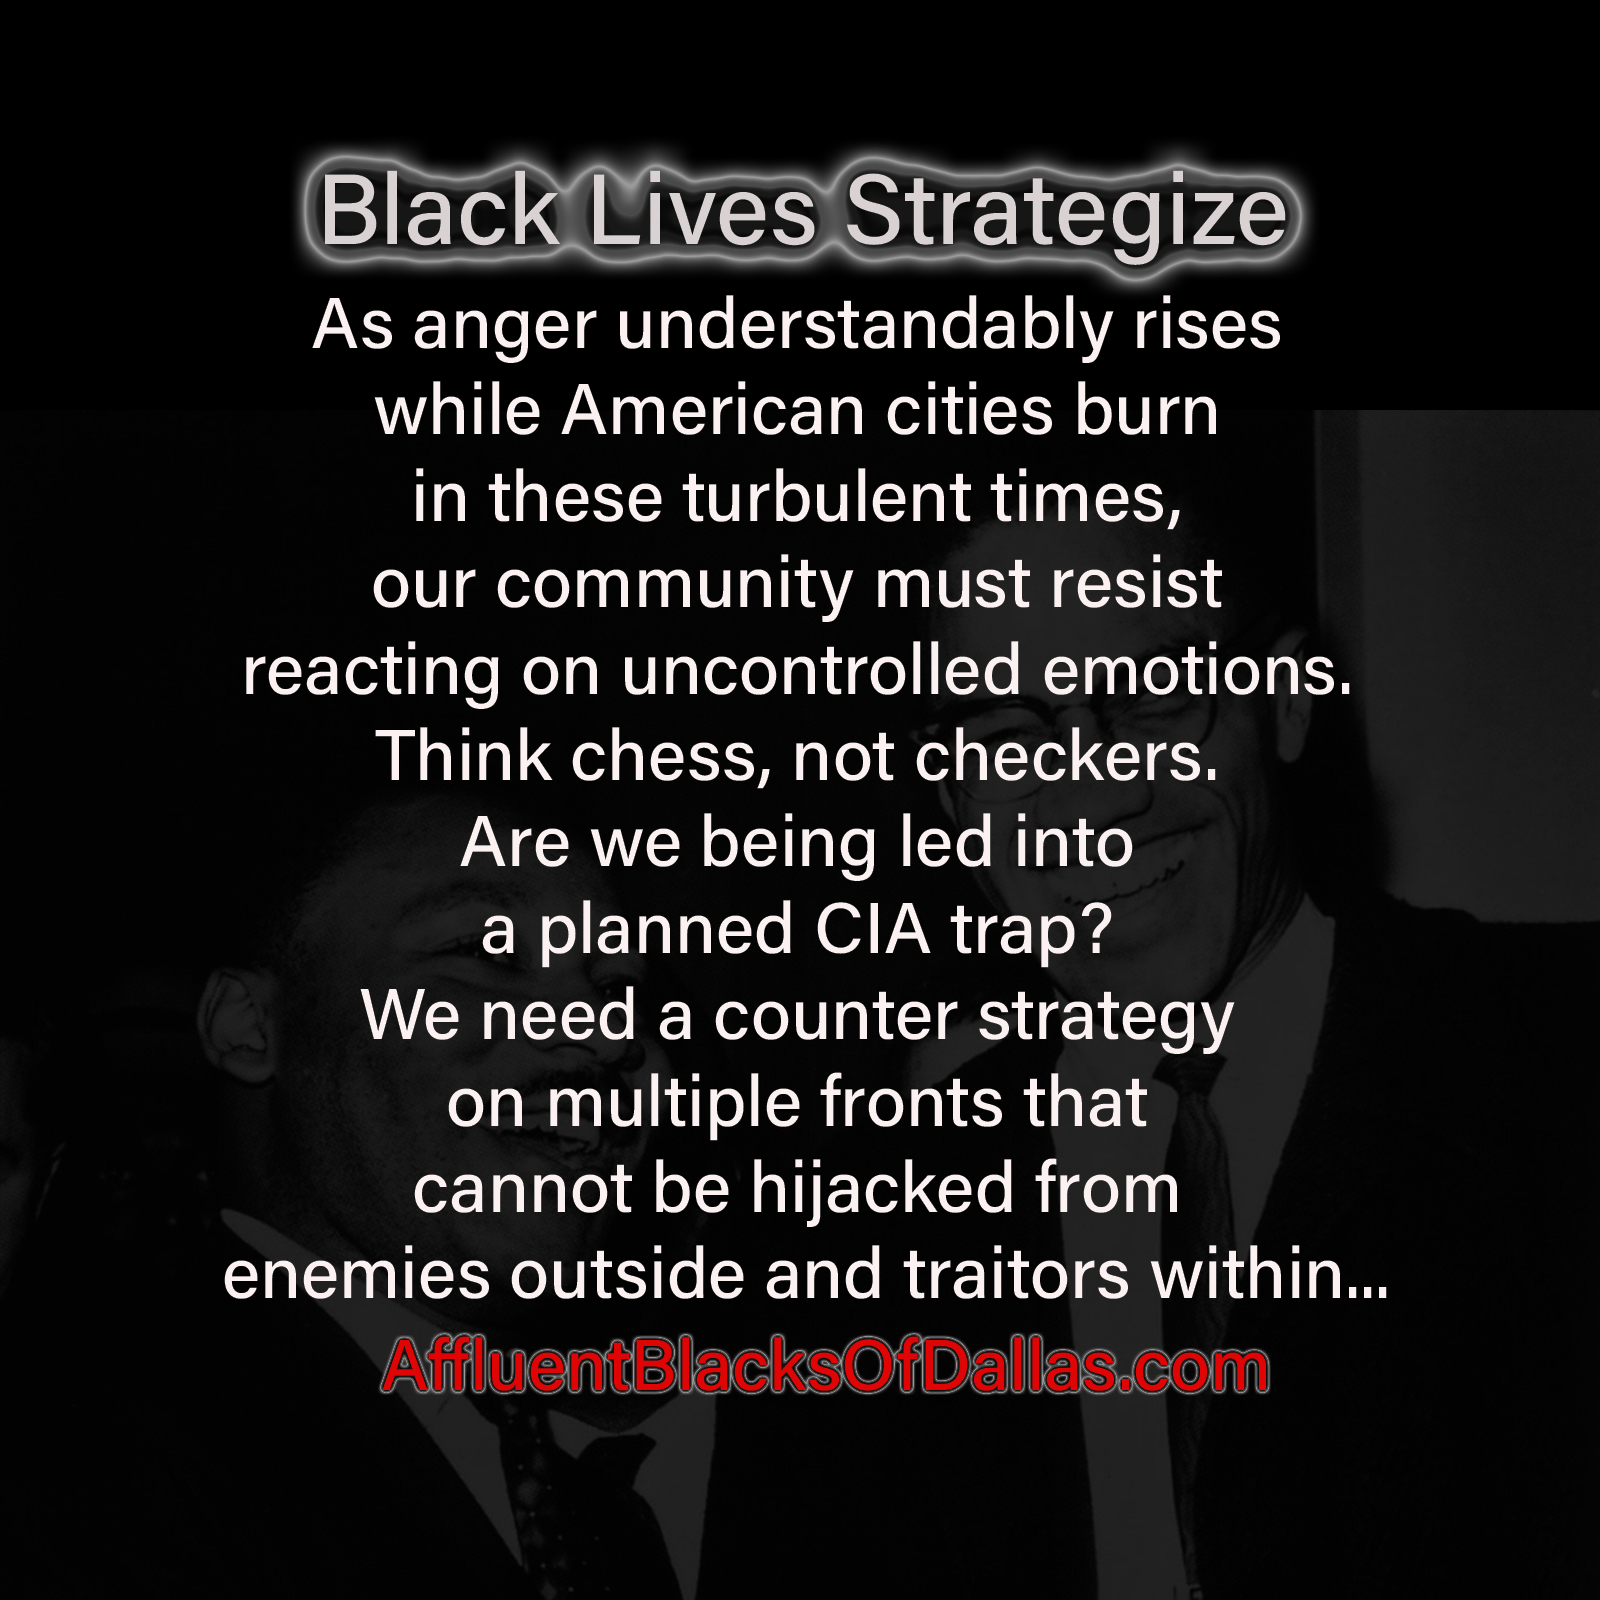 Black Lives Strategize